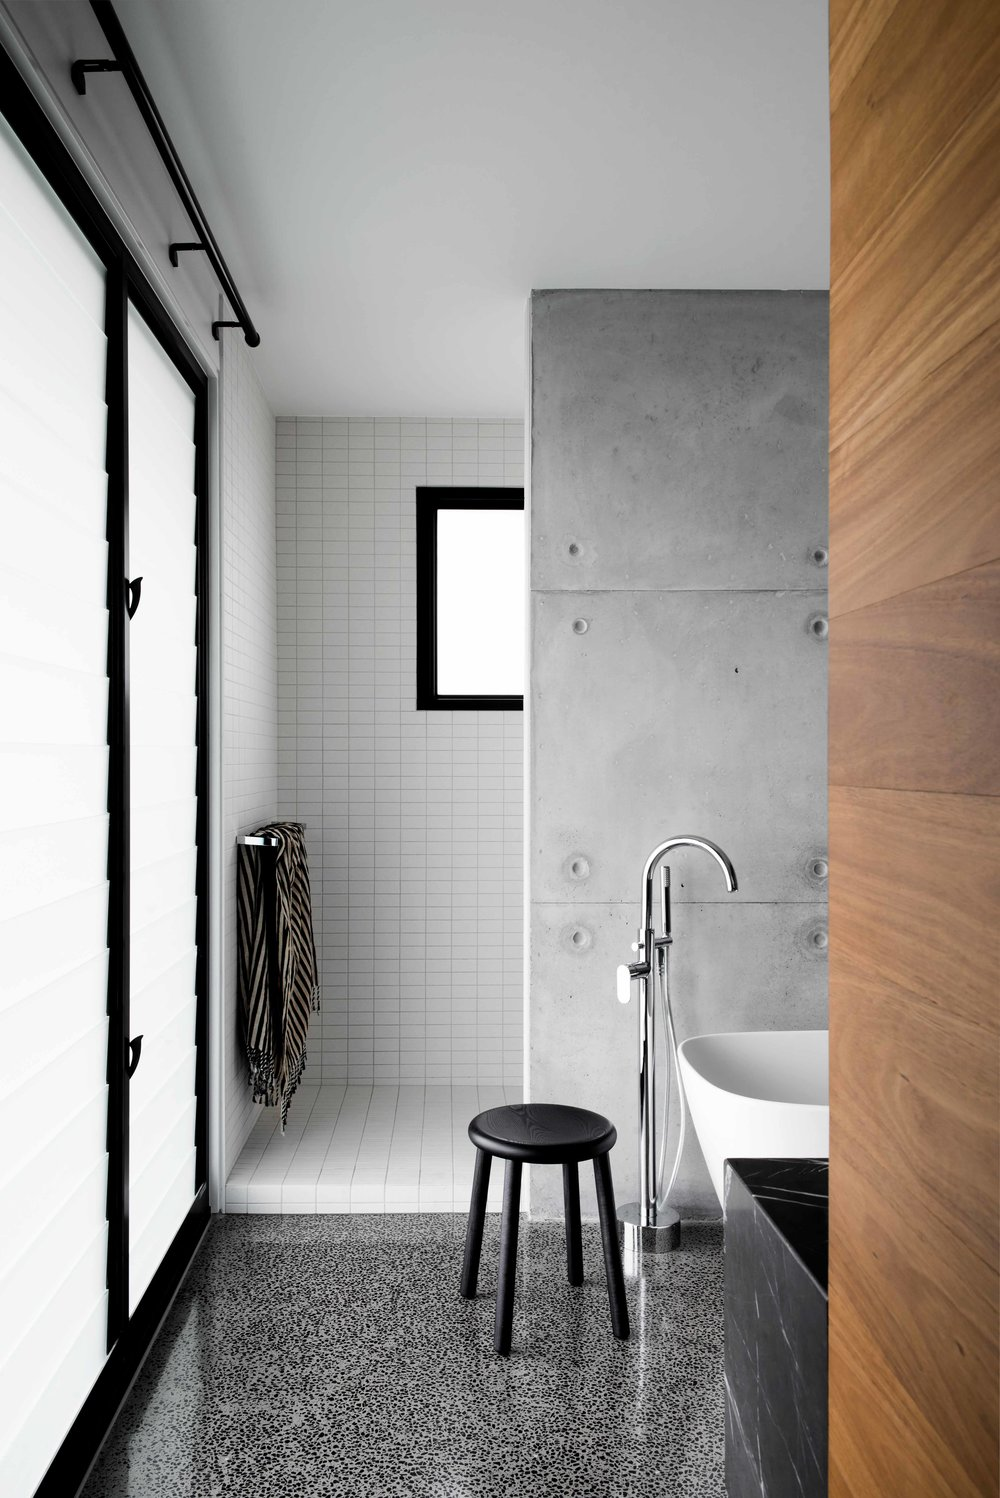 The bathroom continues in black and white tones of modern industrial style‭.‬